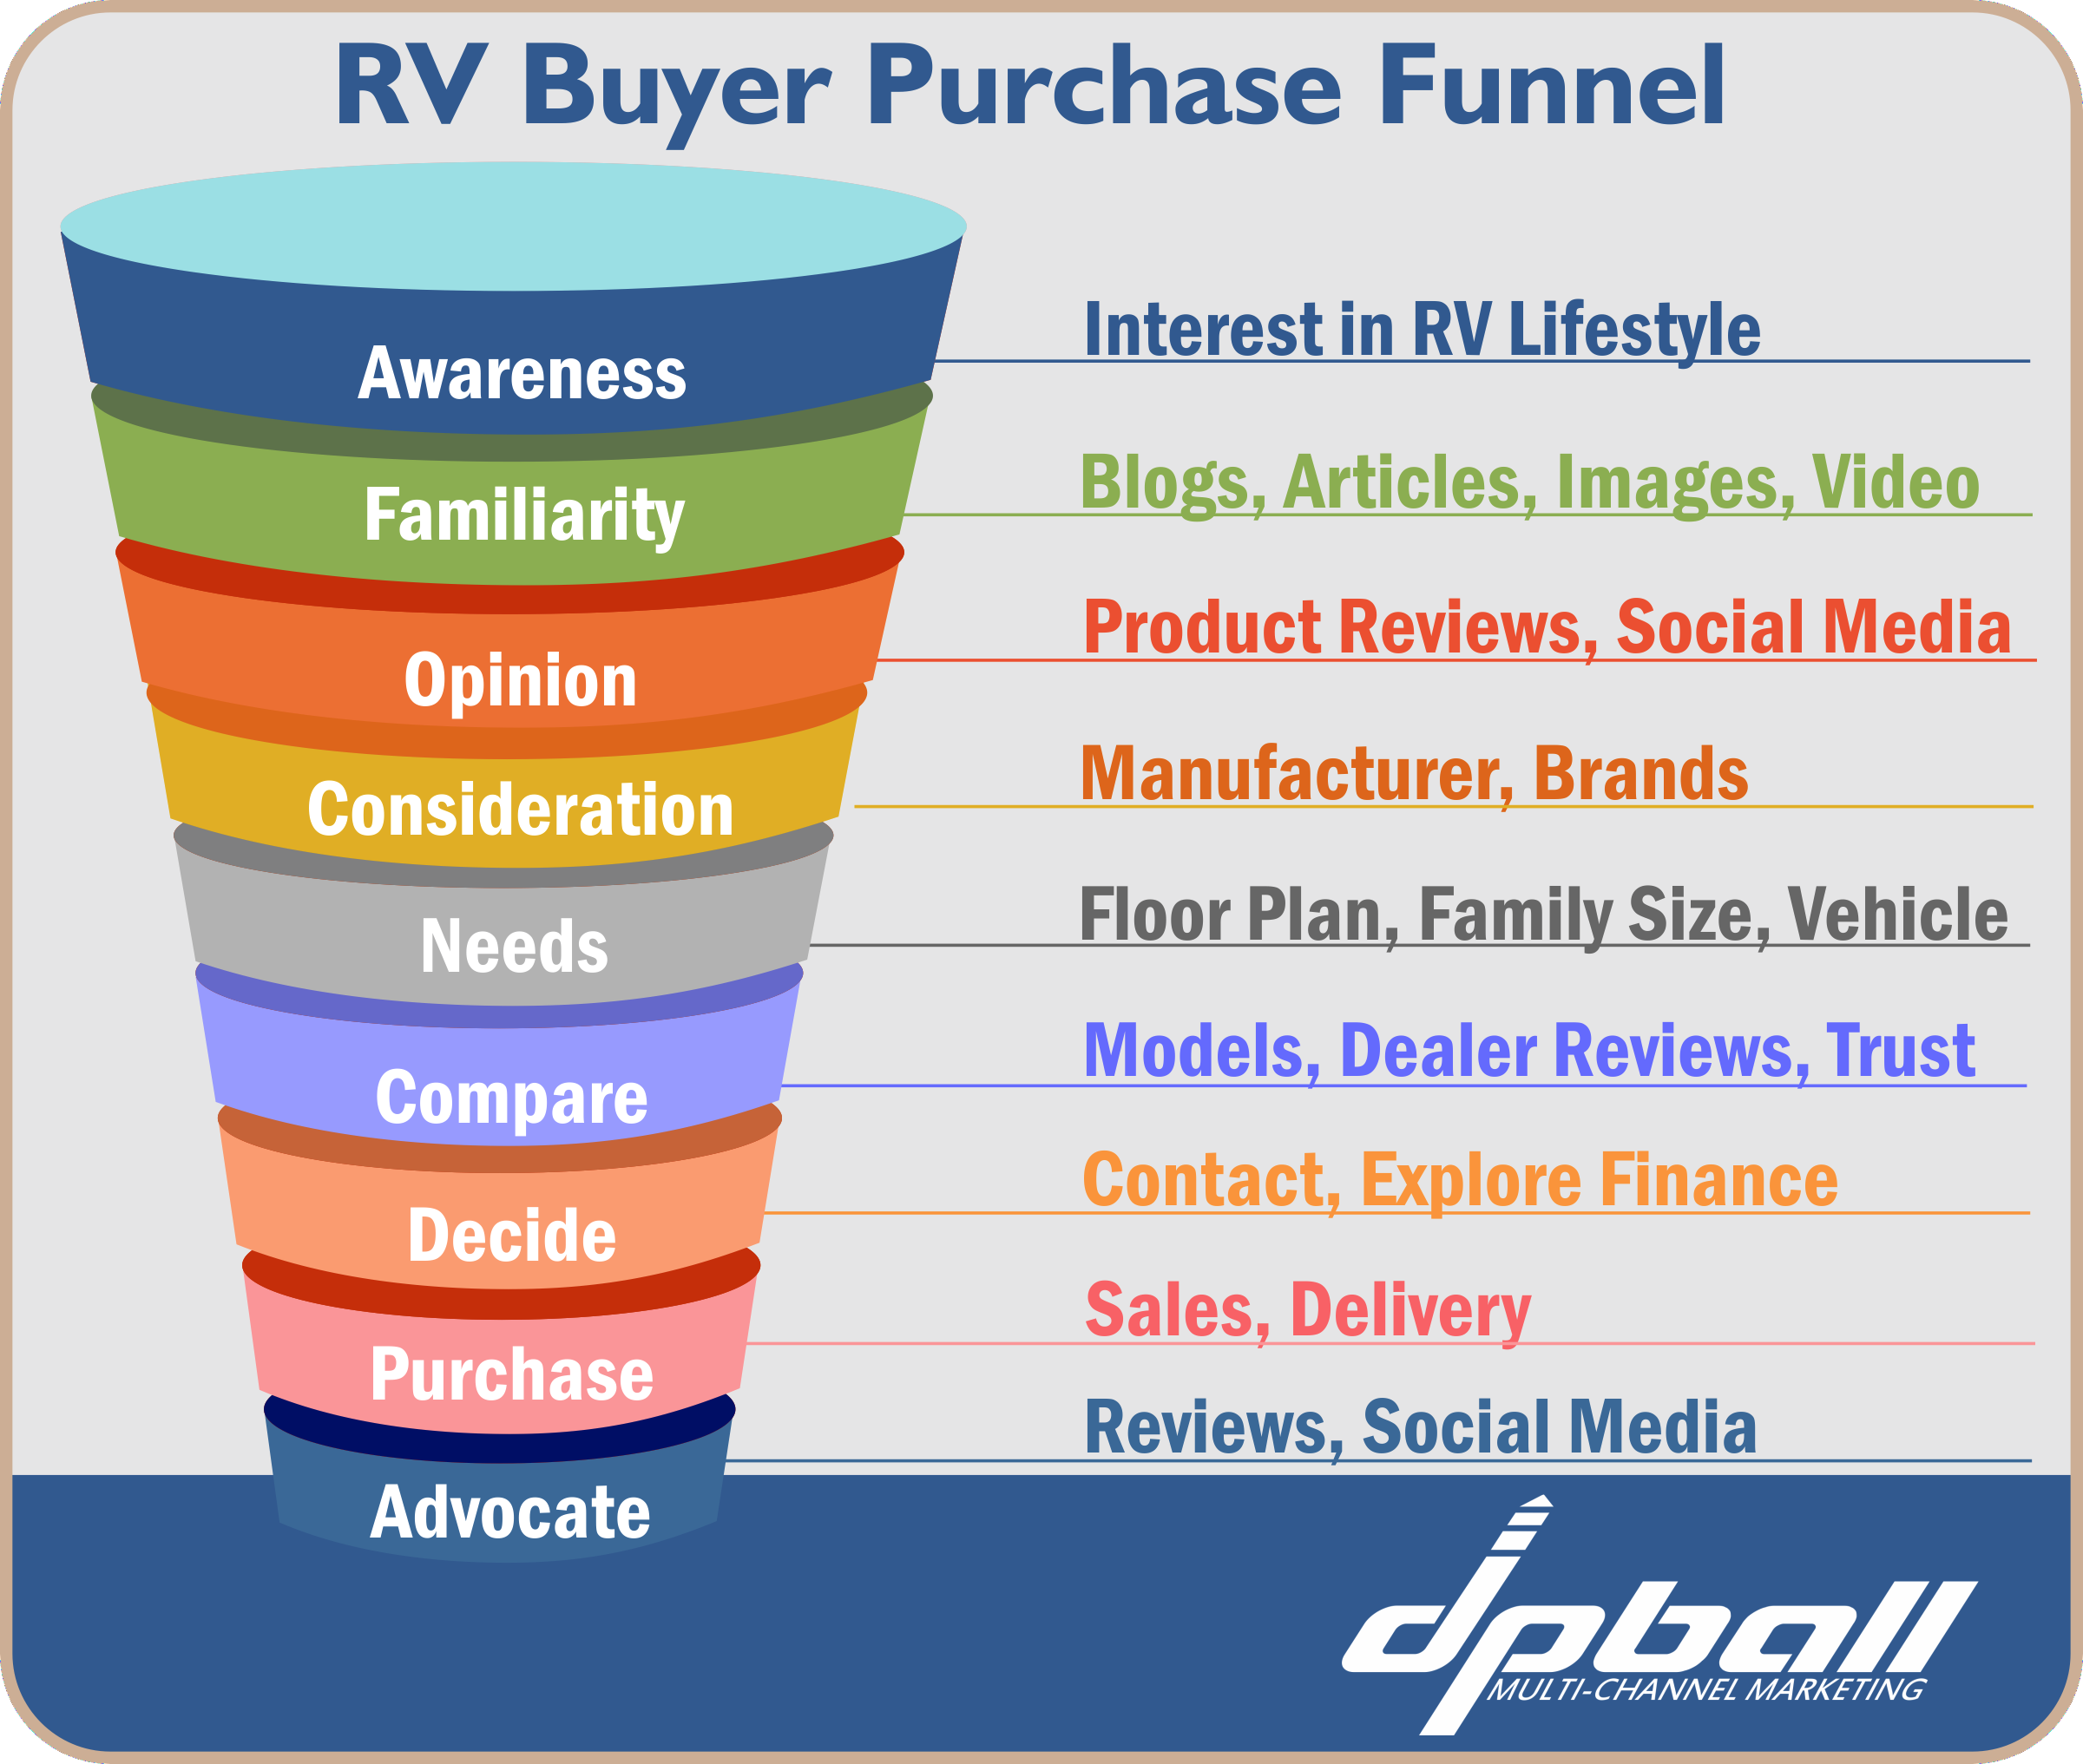 RV Buyer Purchase Funnel